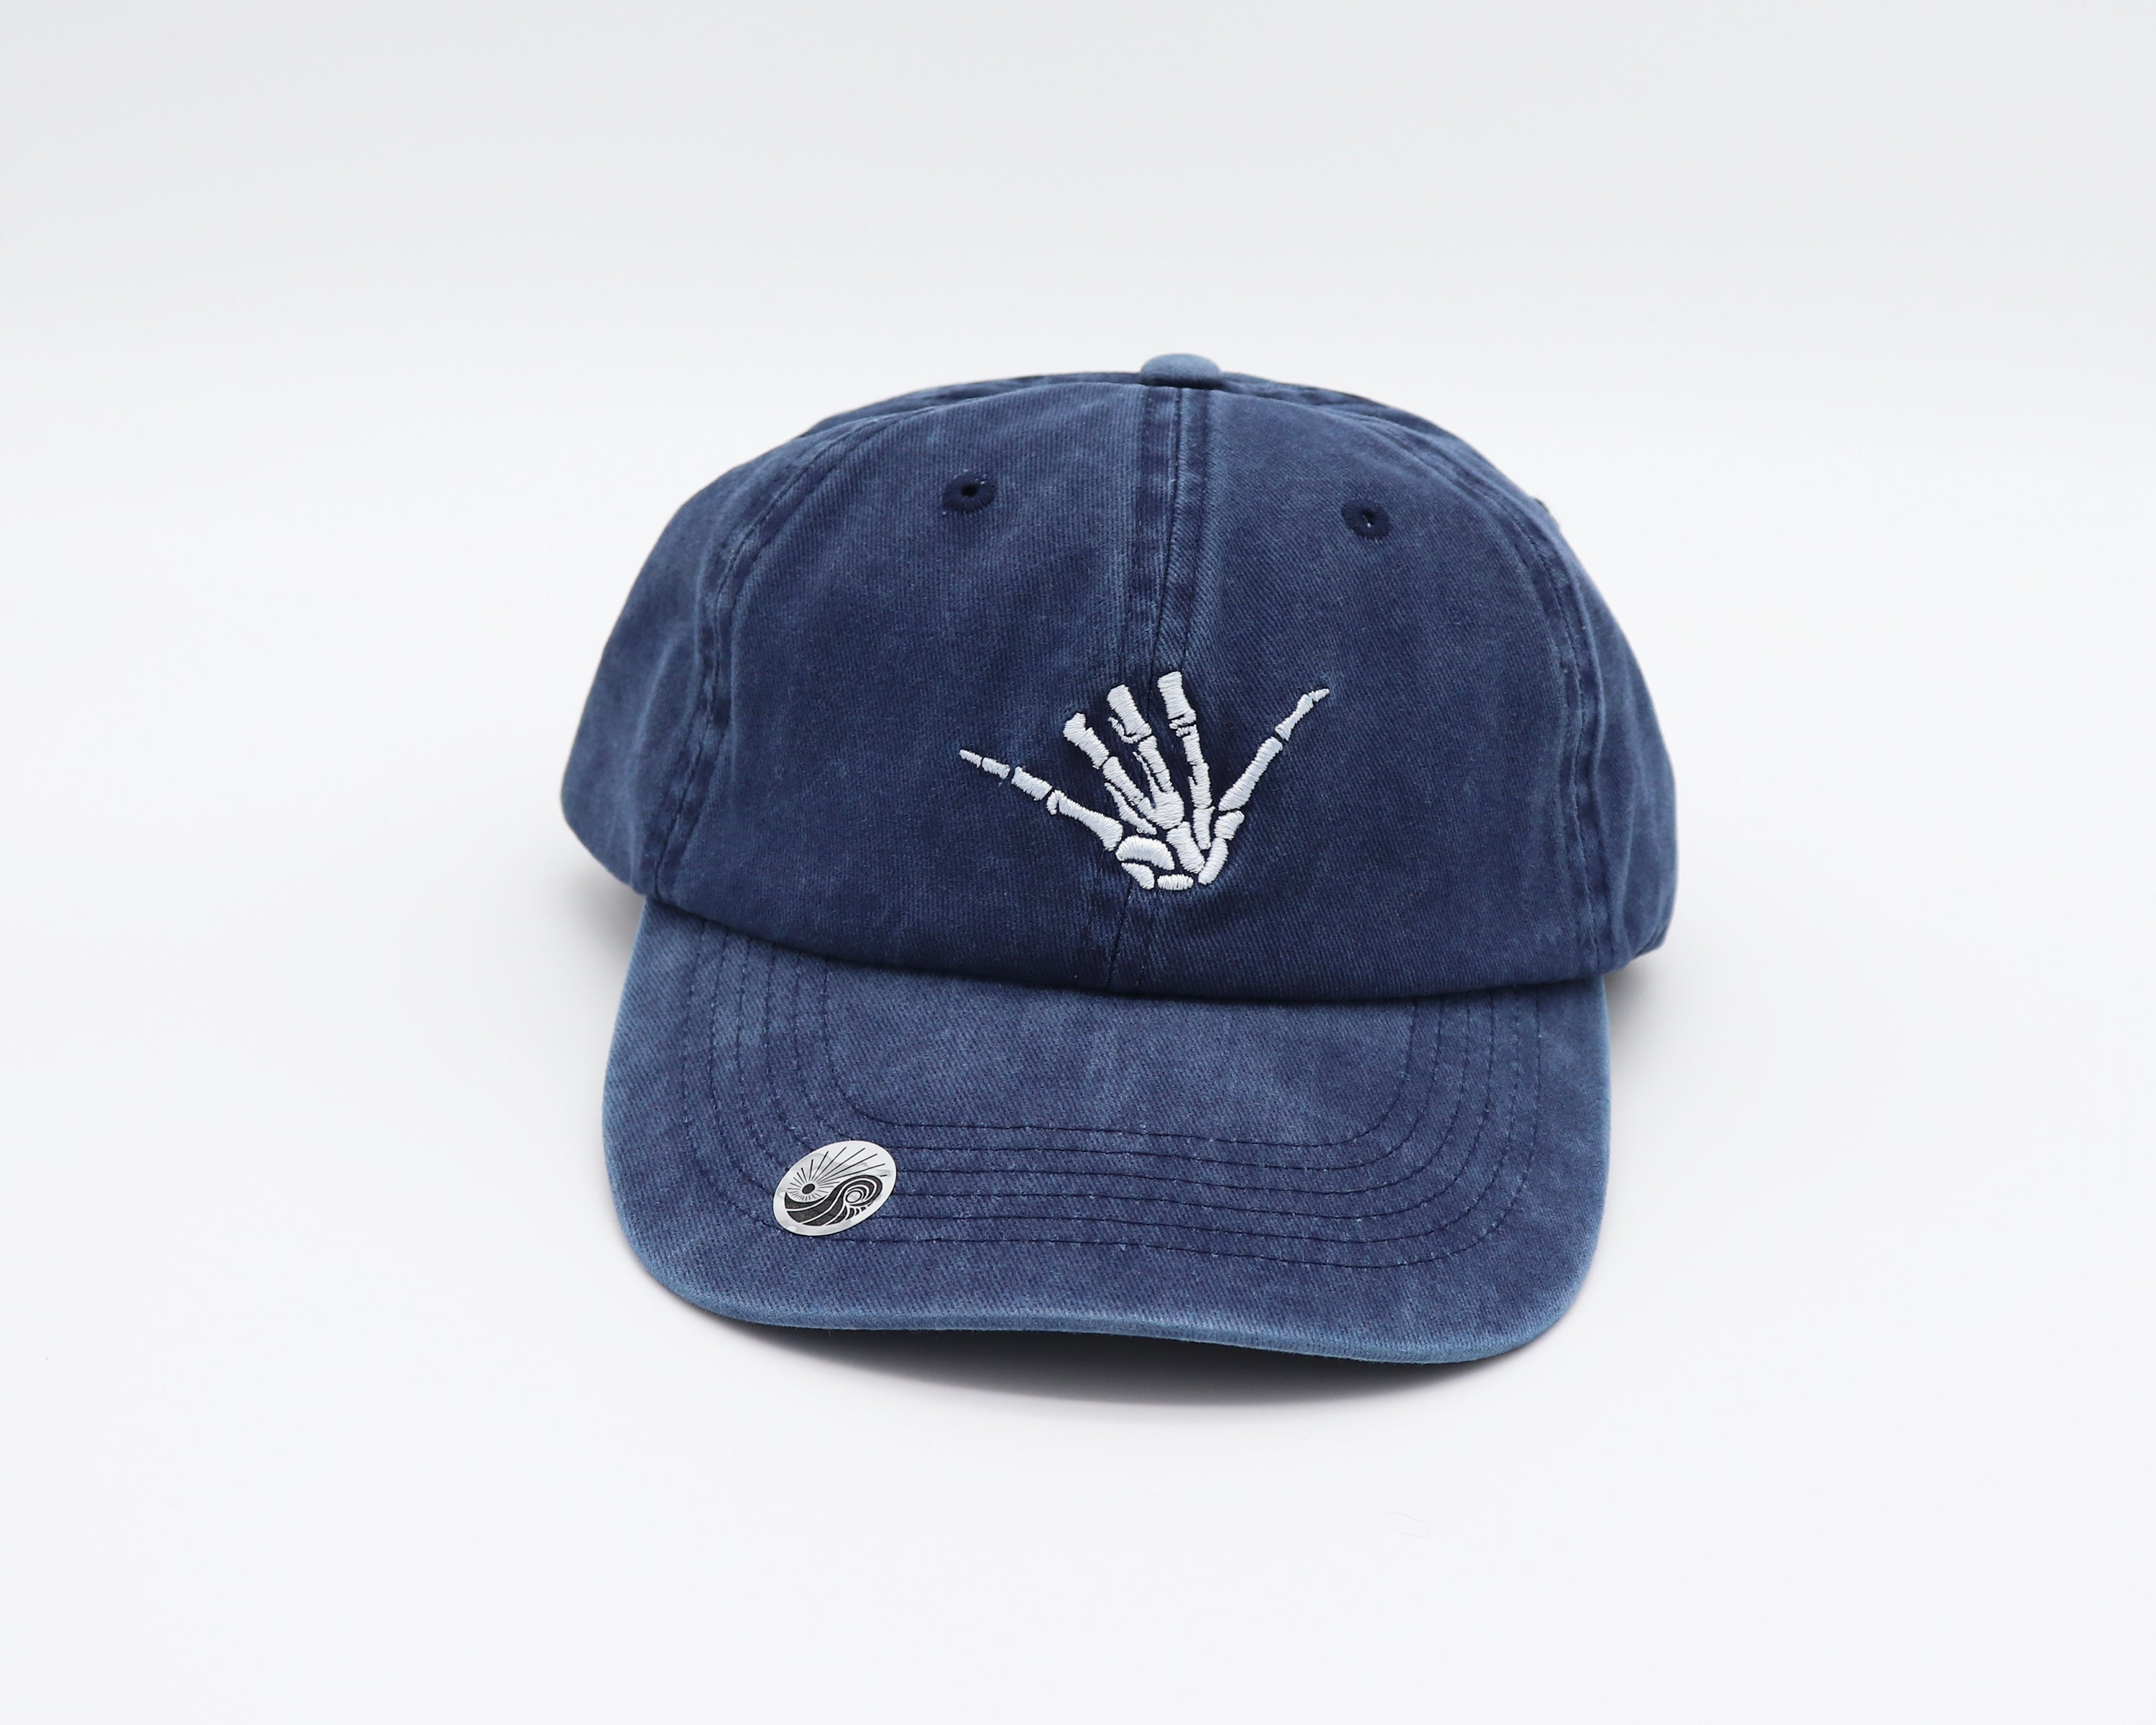 Faded Navy dad hat with a skeleton shaka hand embroidered in white on the center front